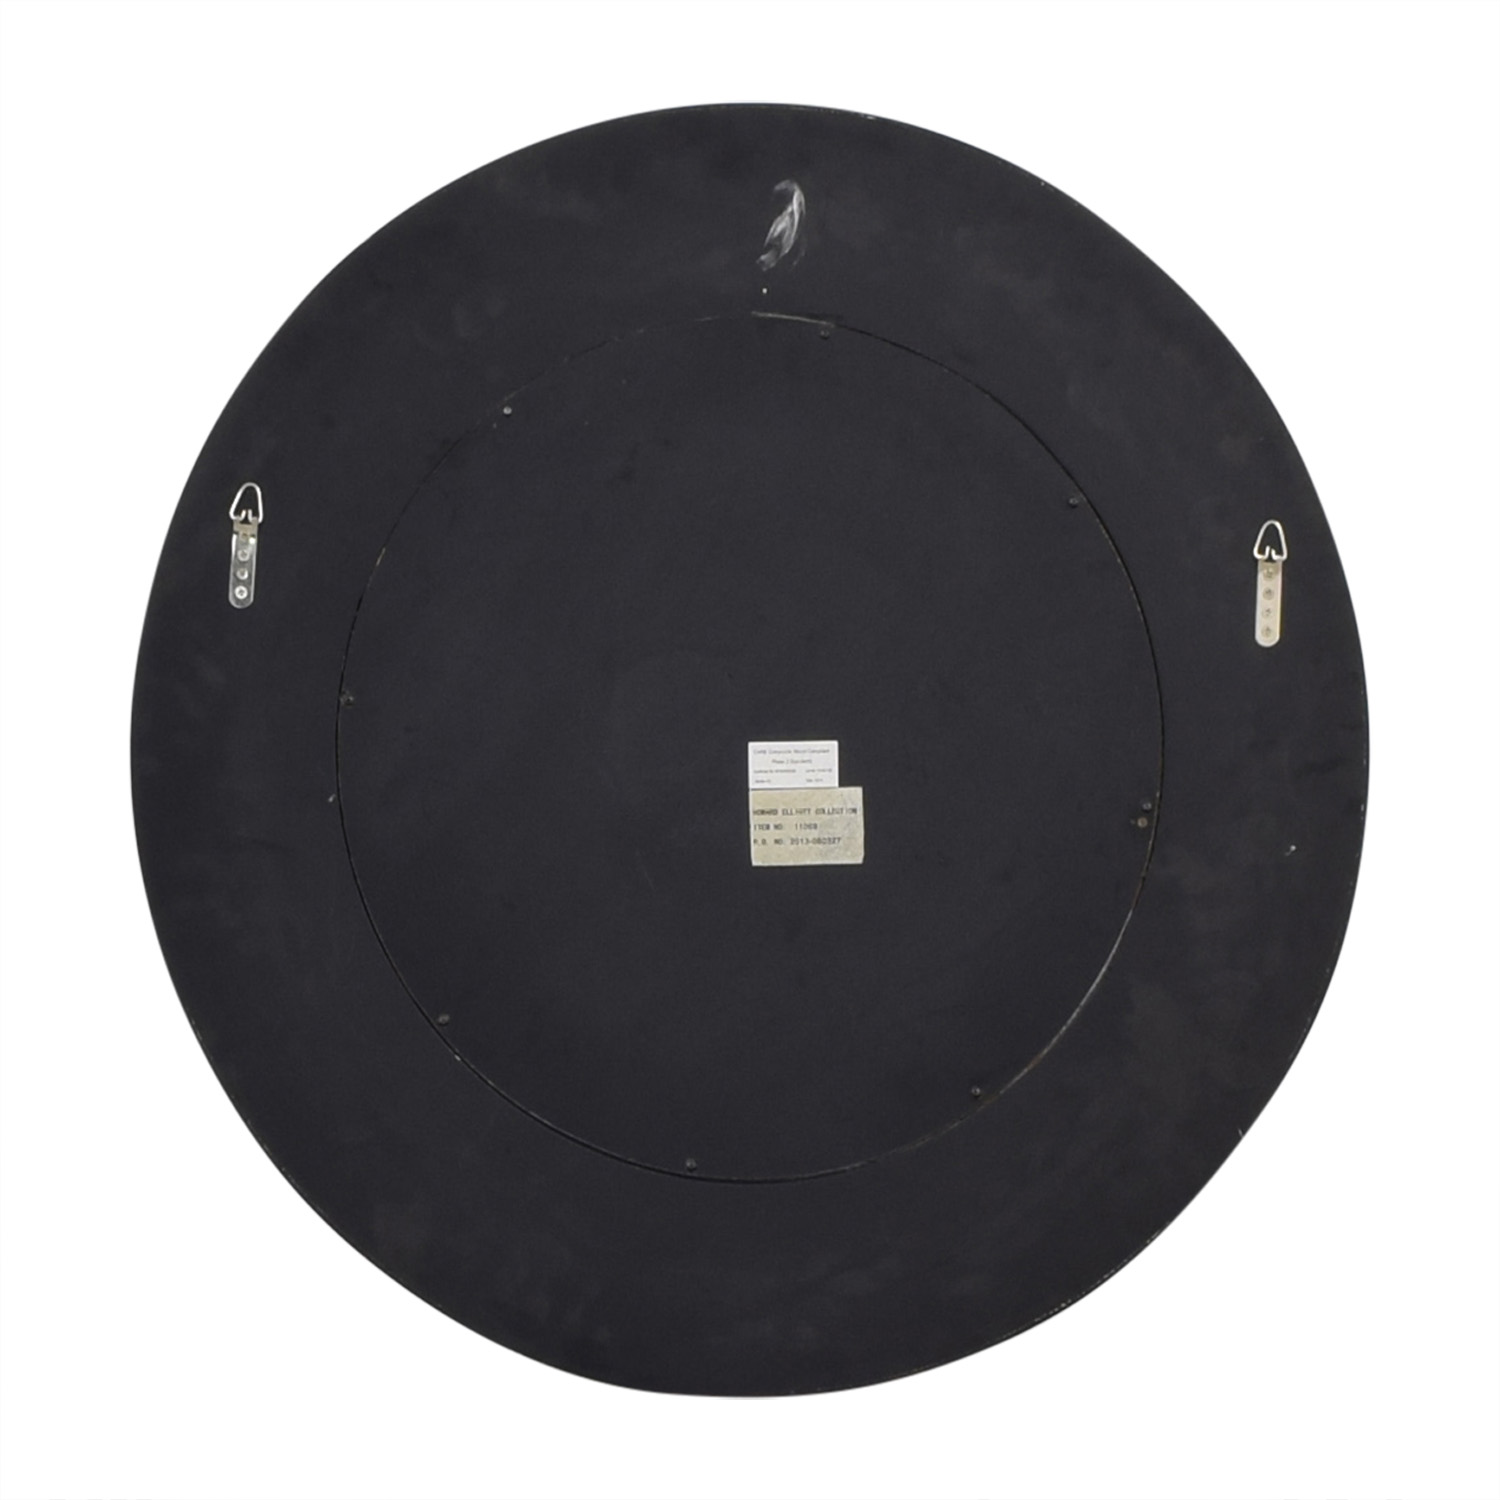 Howard Elliot Collection Roulette Round Panel Mirror price